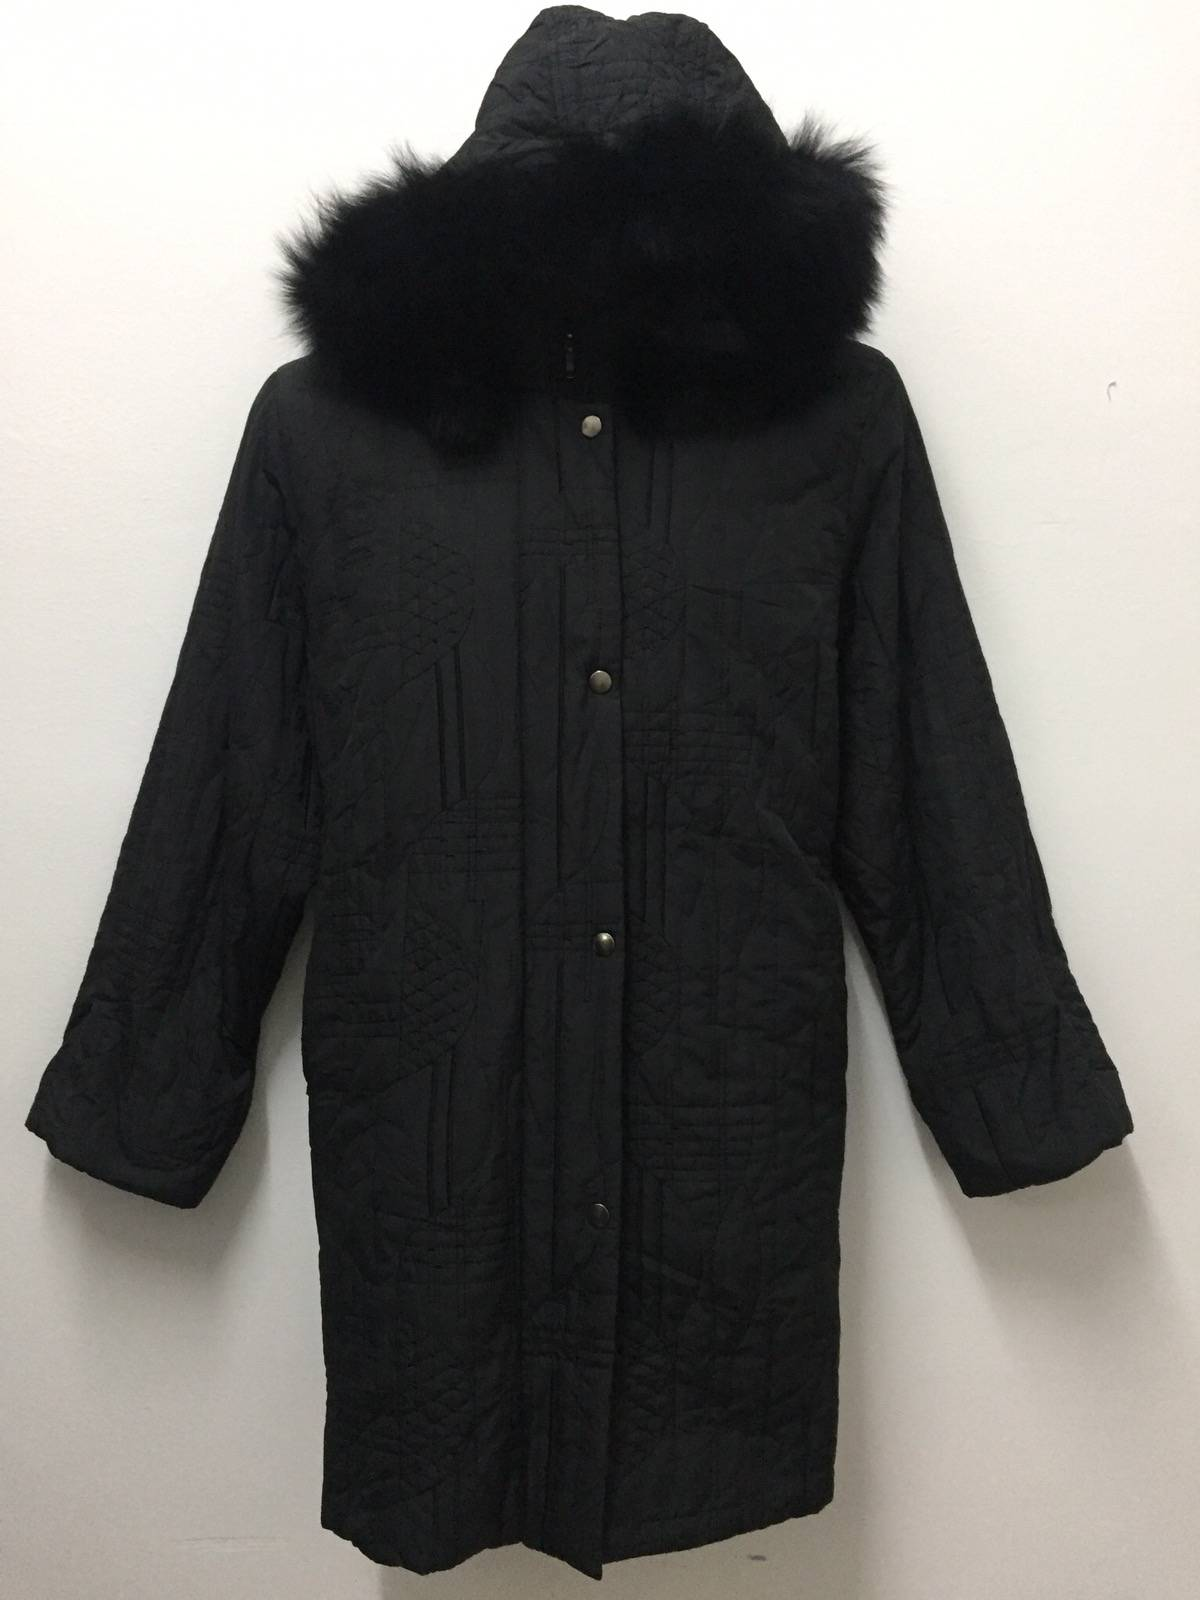 0bc1f059a61 Japanese Brand ×. Japanese Brand Puffer Goose Down Jacket/Parka with  Hoodie/Padded Jacket Size L